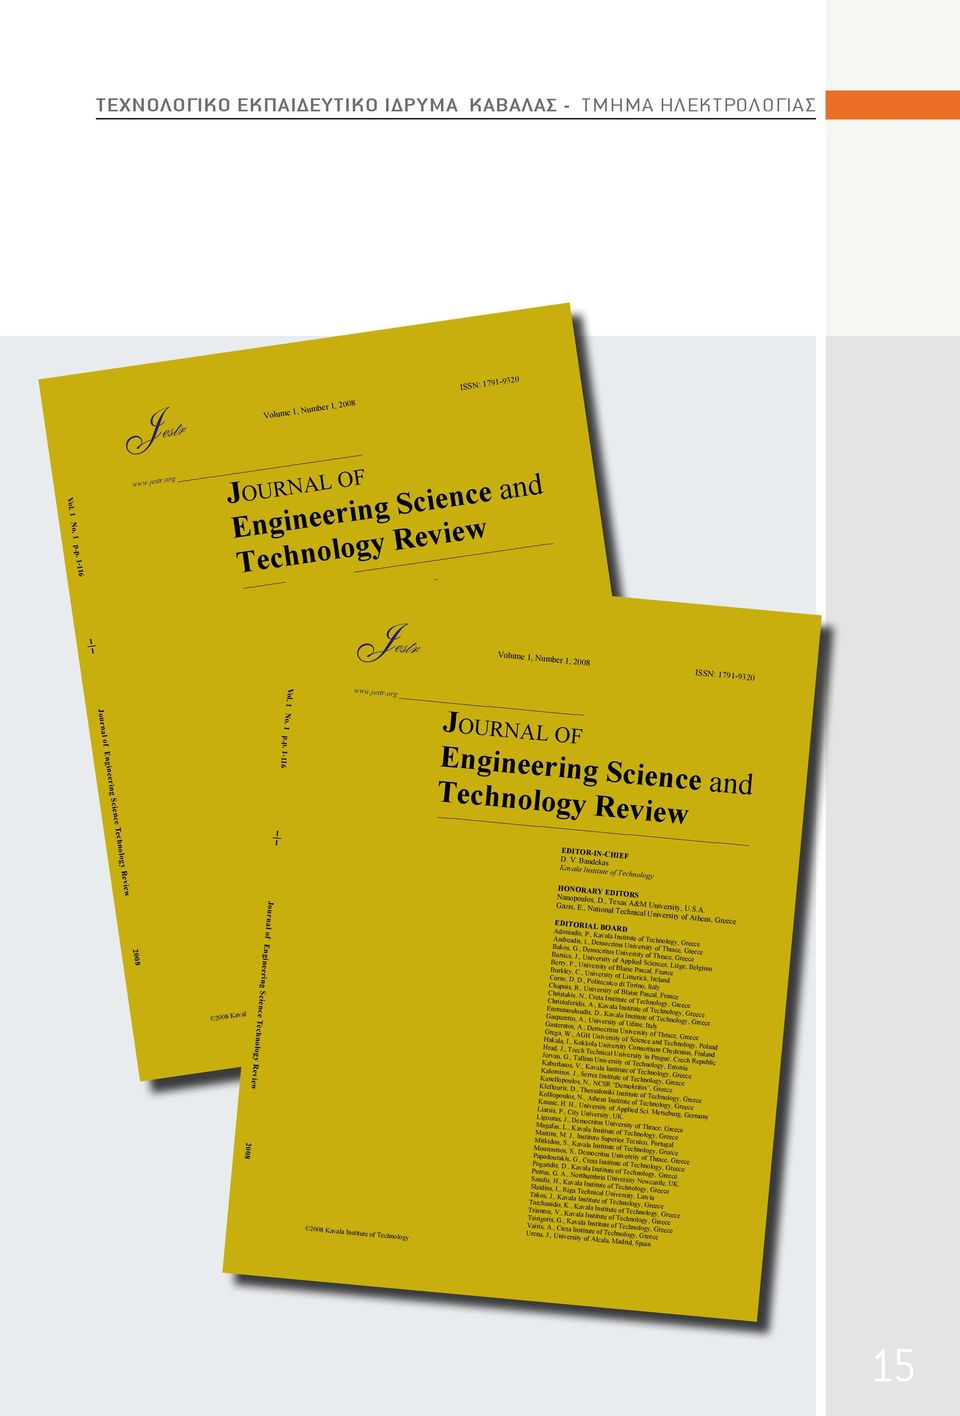 p. 1-116 ISSN: 1791-9320 1 1 Journal of Engineering Science Technology Review 2008 ience and view mber 1, 2008 ISSN: 1791-9320 OF ring Science and gy Review EDITOR-IN-CHIEF D. V.